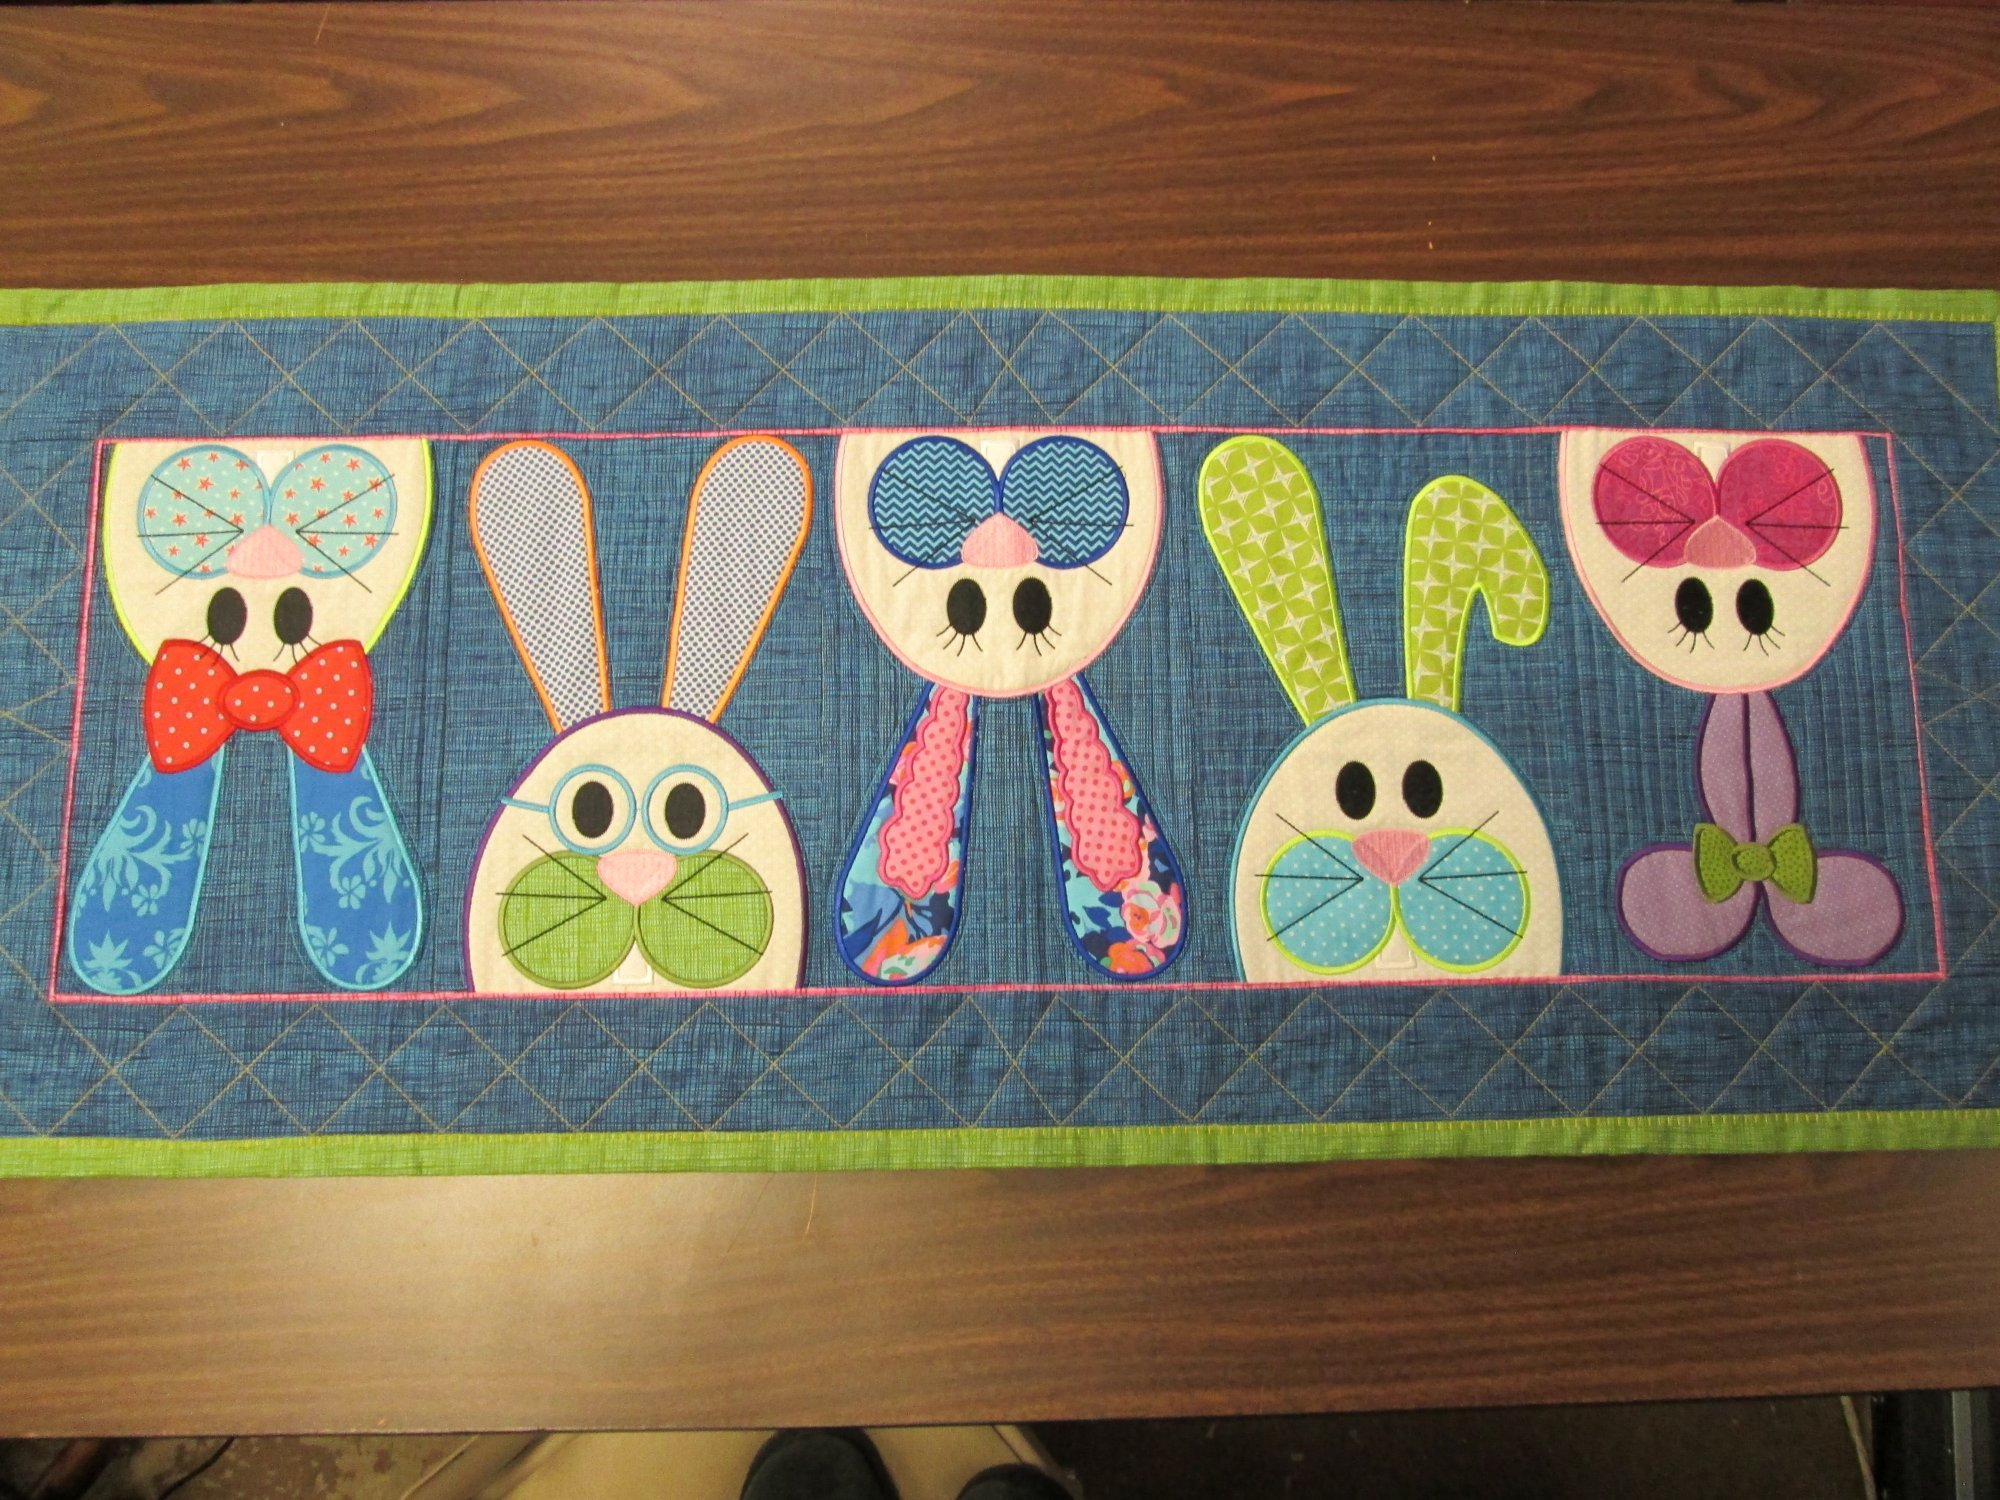 Applique Classe 2 Easter Bunny Table Runner Machine Embroidery Applique Class 1